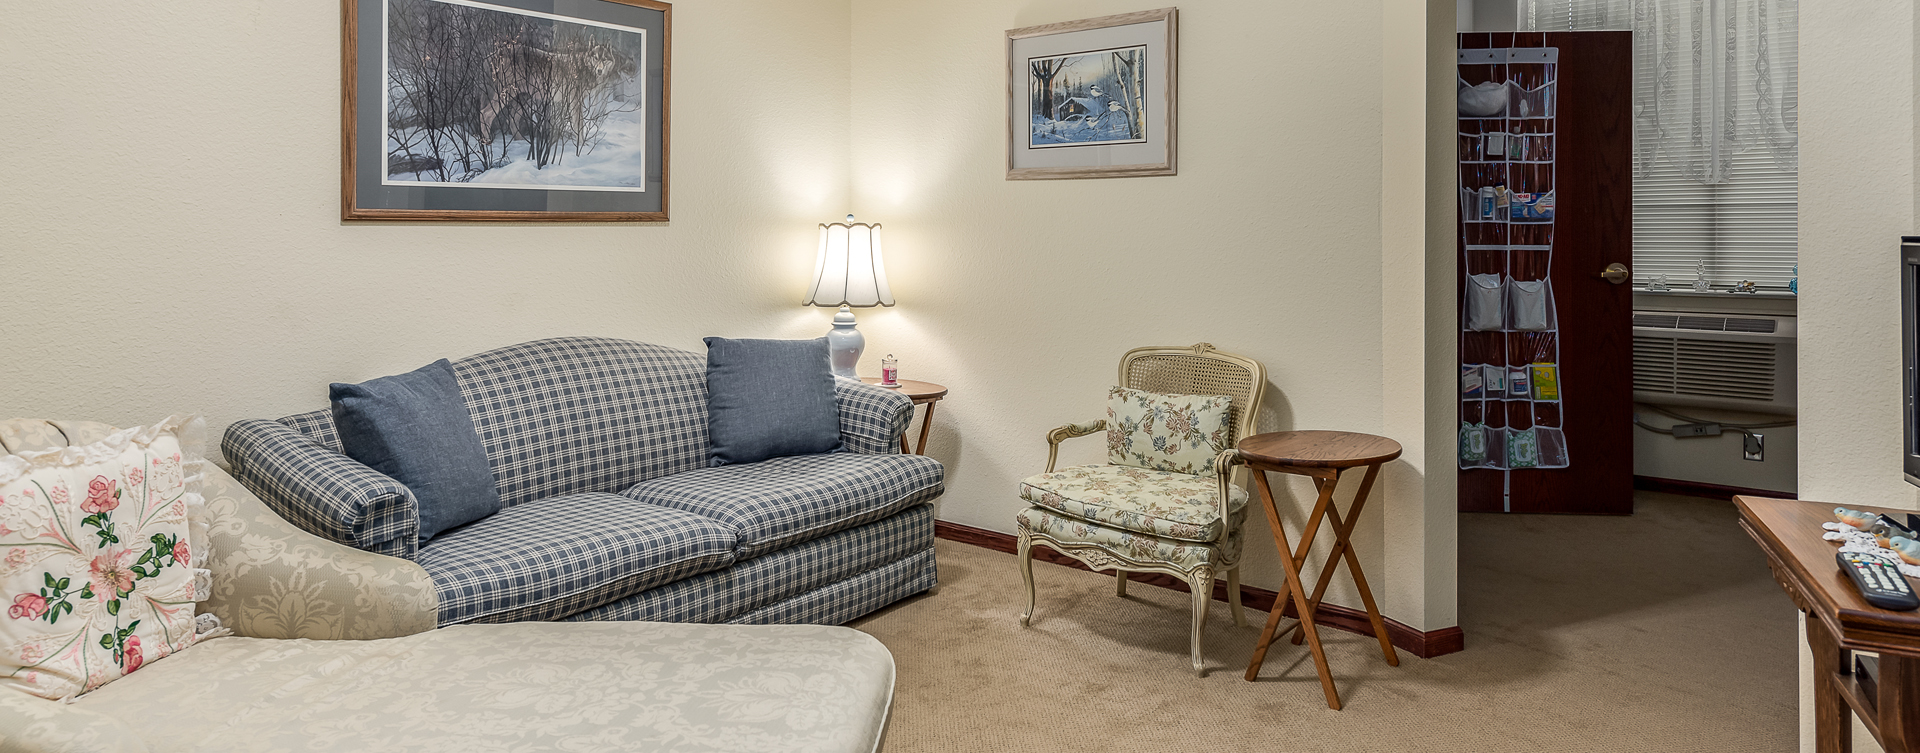 Get a new lease on life with a cozy apartment at Bickford of Saginaw Township